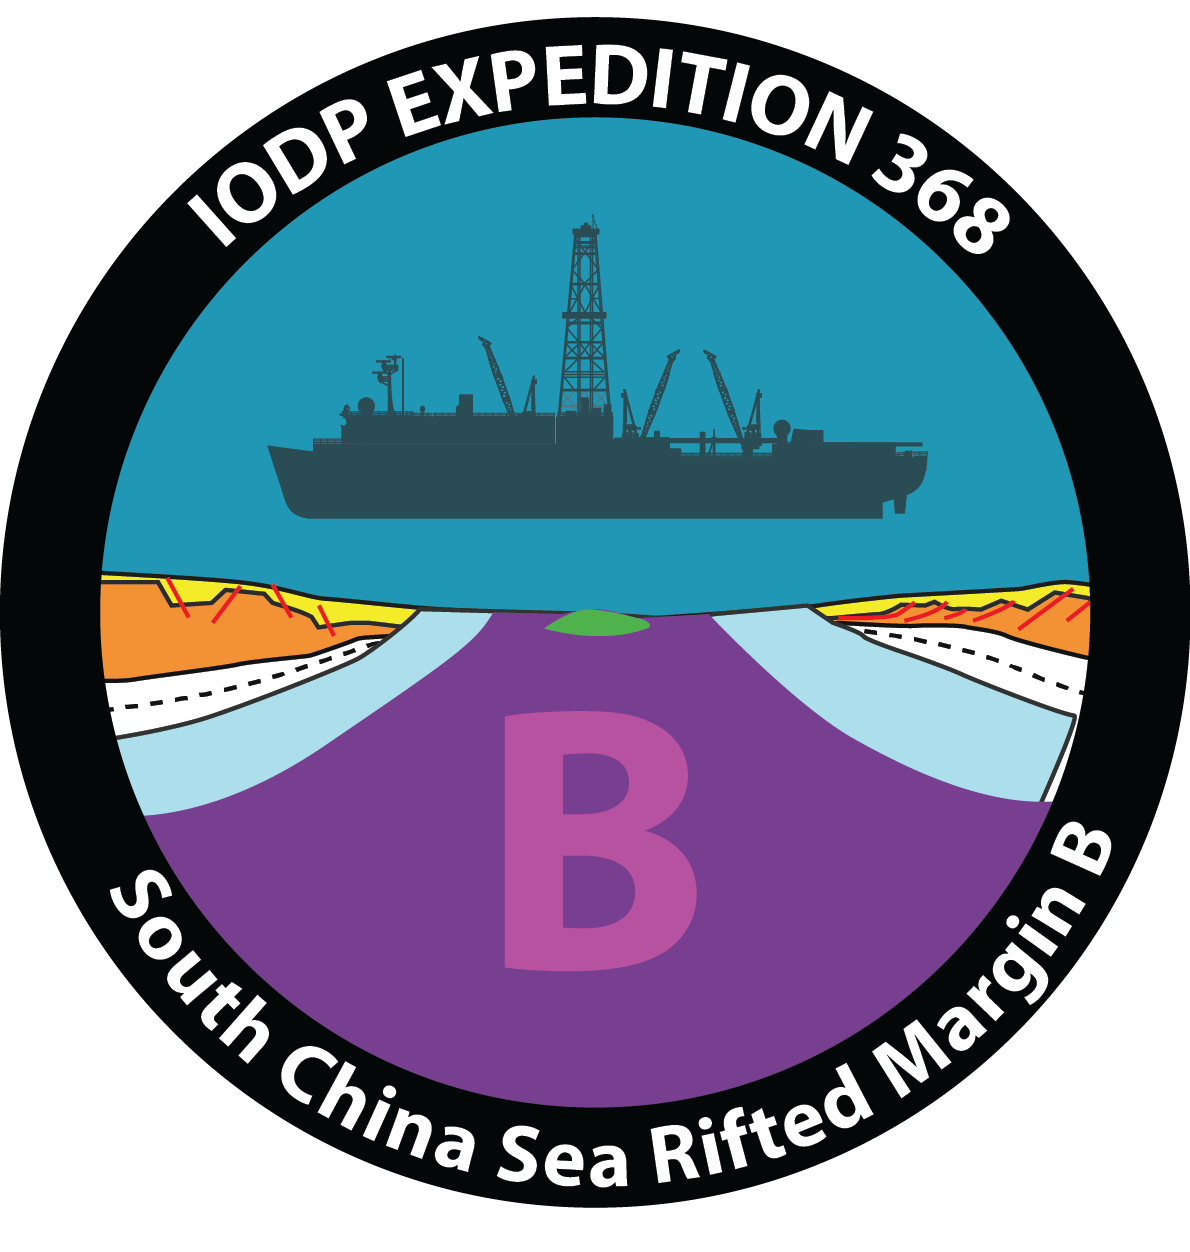 South china sea rifted. Clipart rock physical property